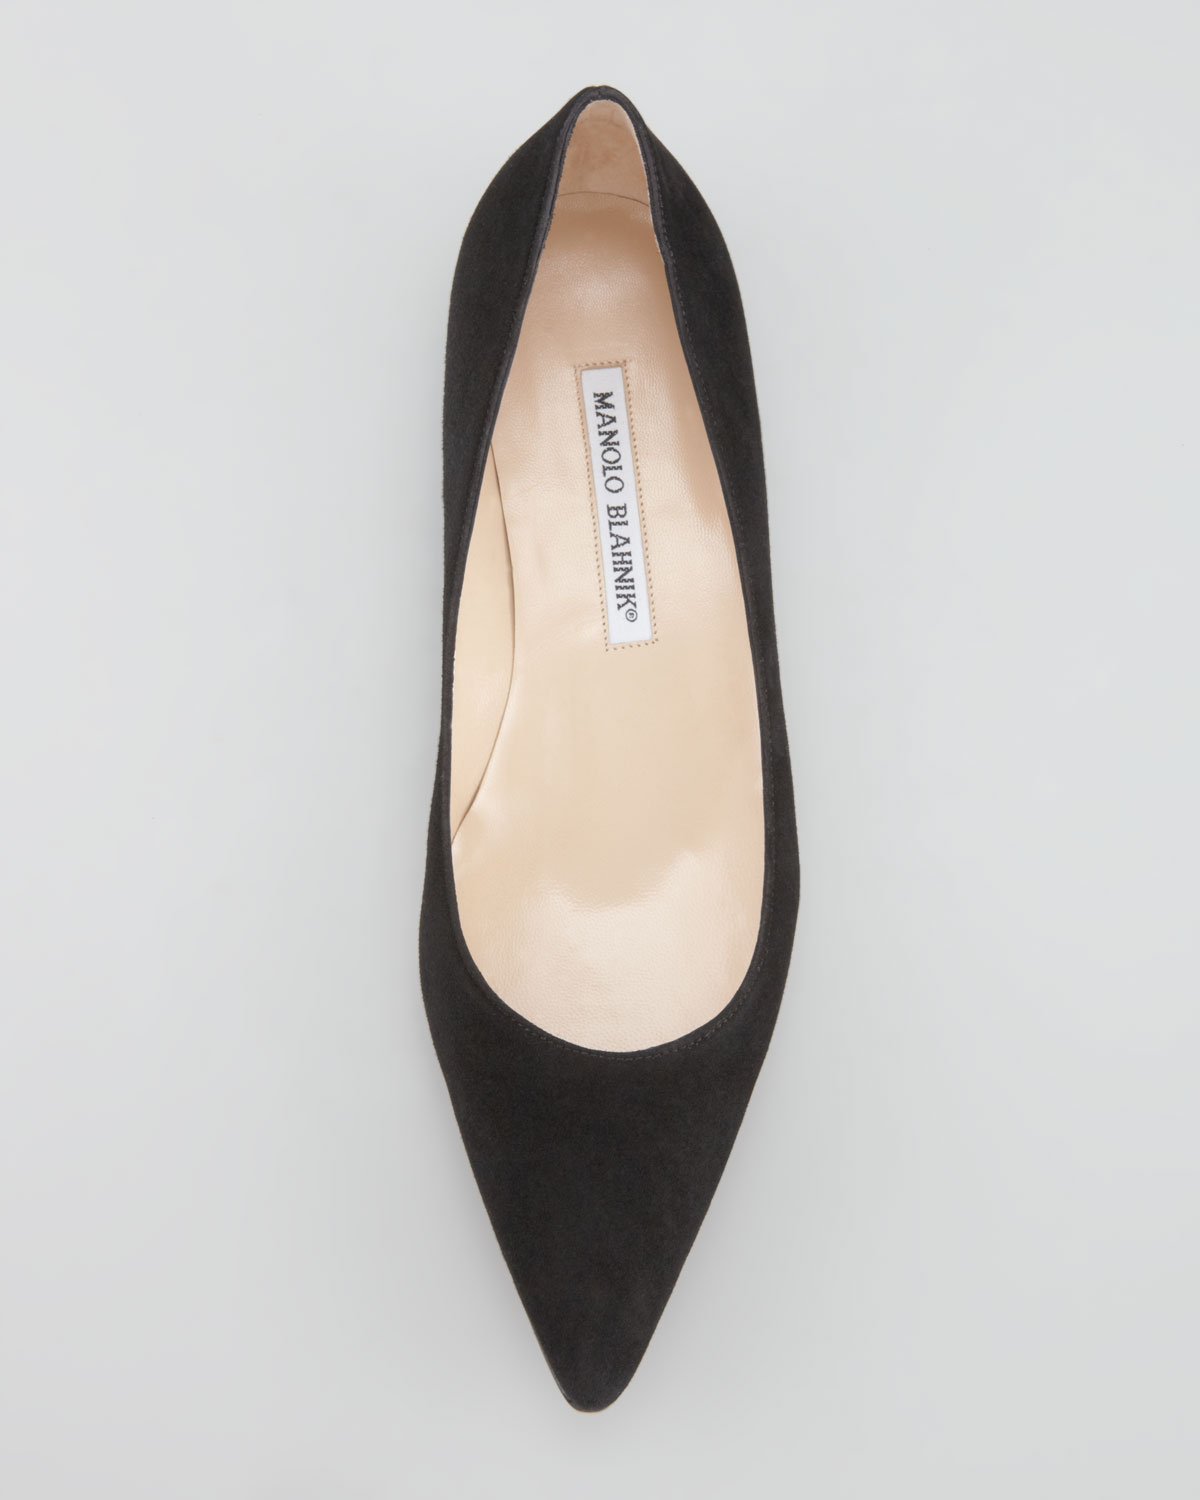 discount shop for sale new arrival Manolo Blahnik Patent Leather Pointed-Toe Flats cheap get to buy cheap price shop for c4mi1mJetG